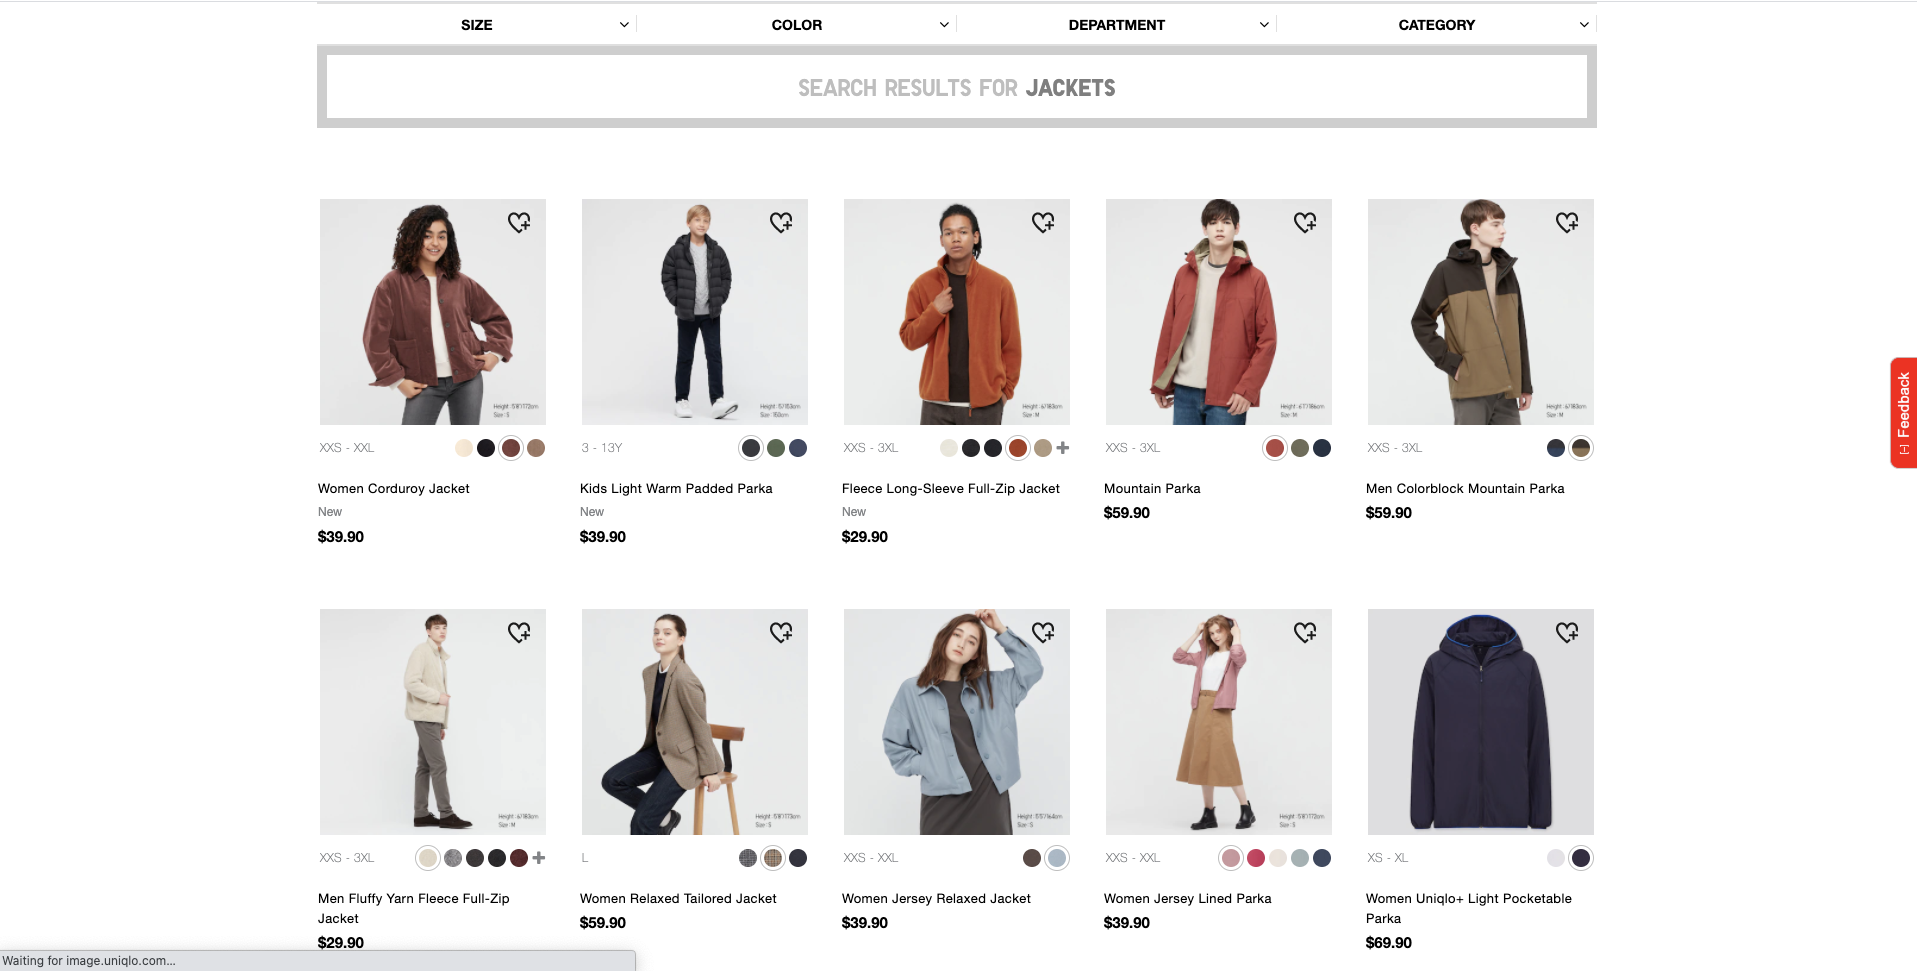 Uniqlo website offering search results with color and availability